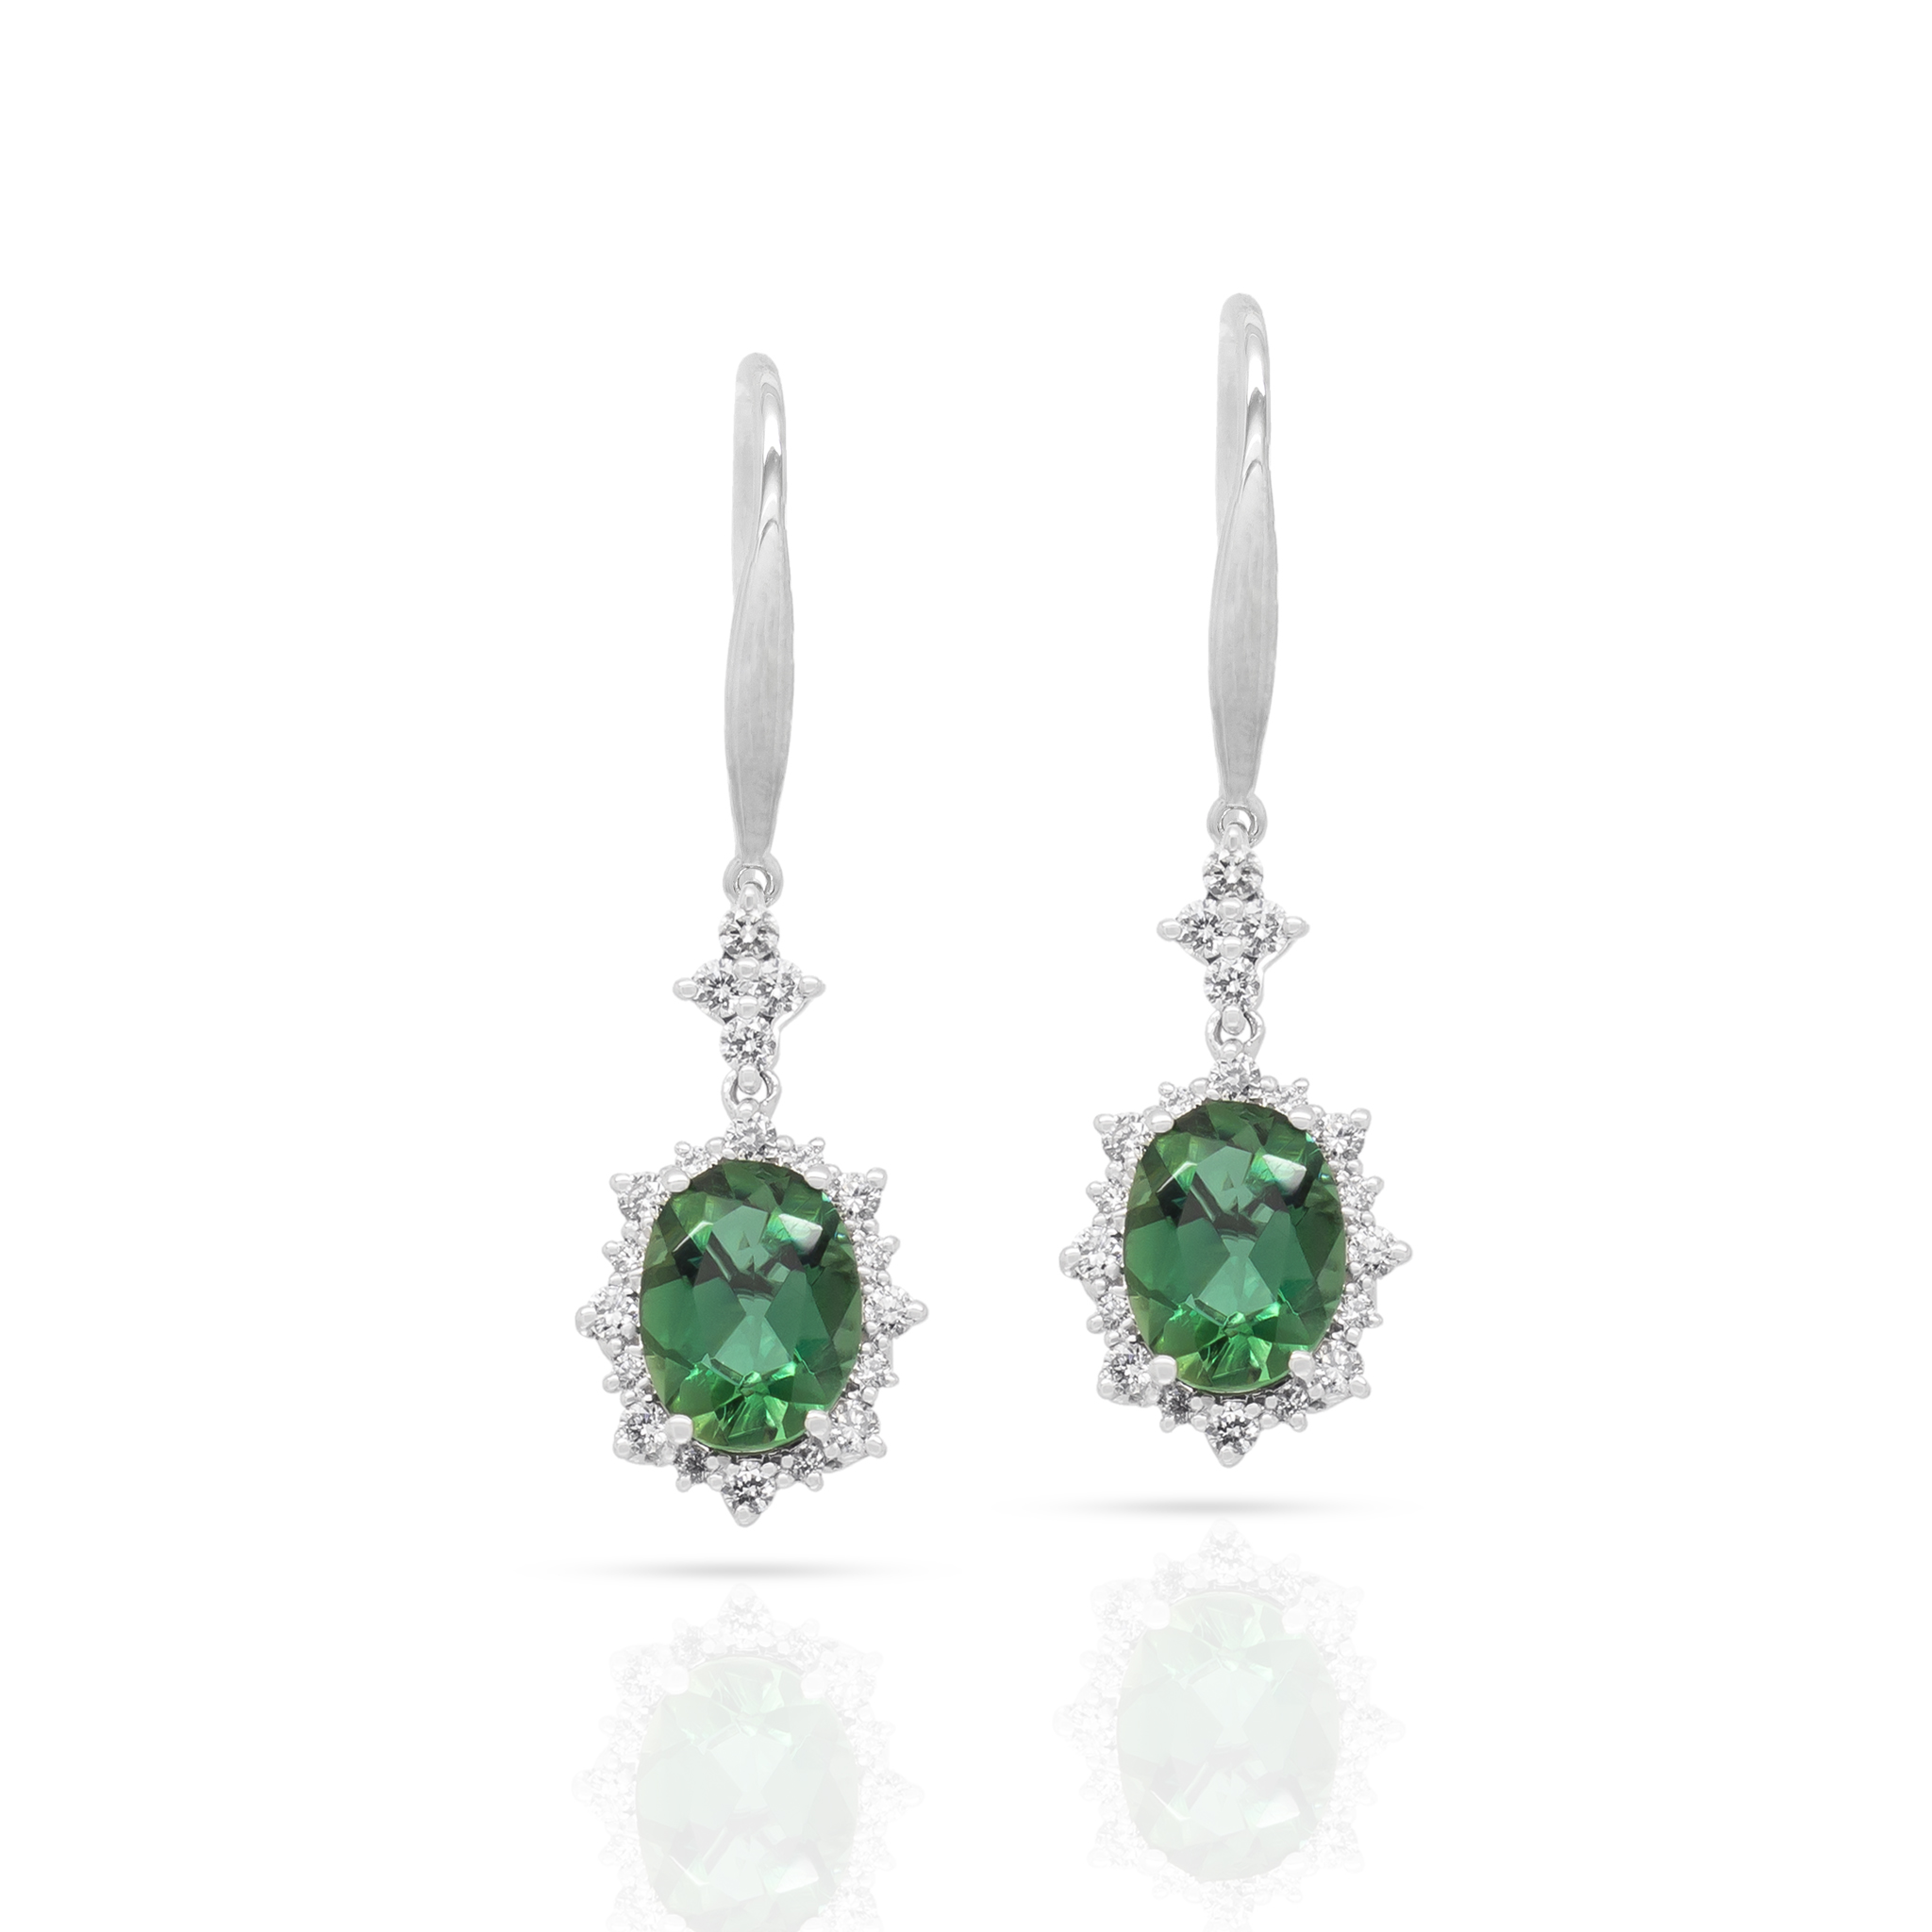 Green Tourmaline Earrings with Signature